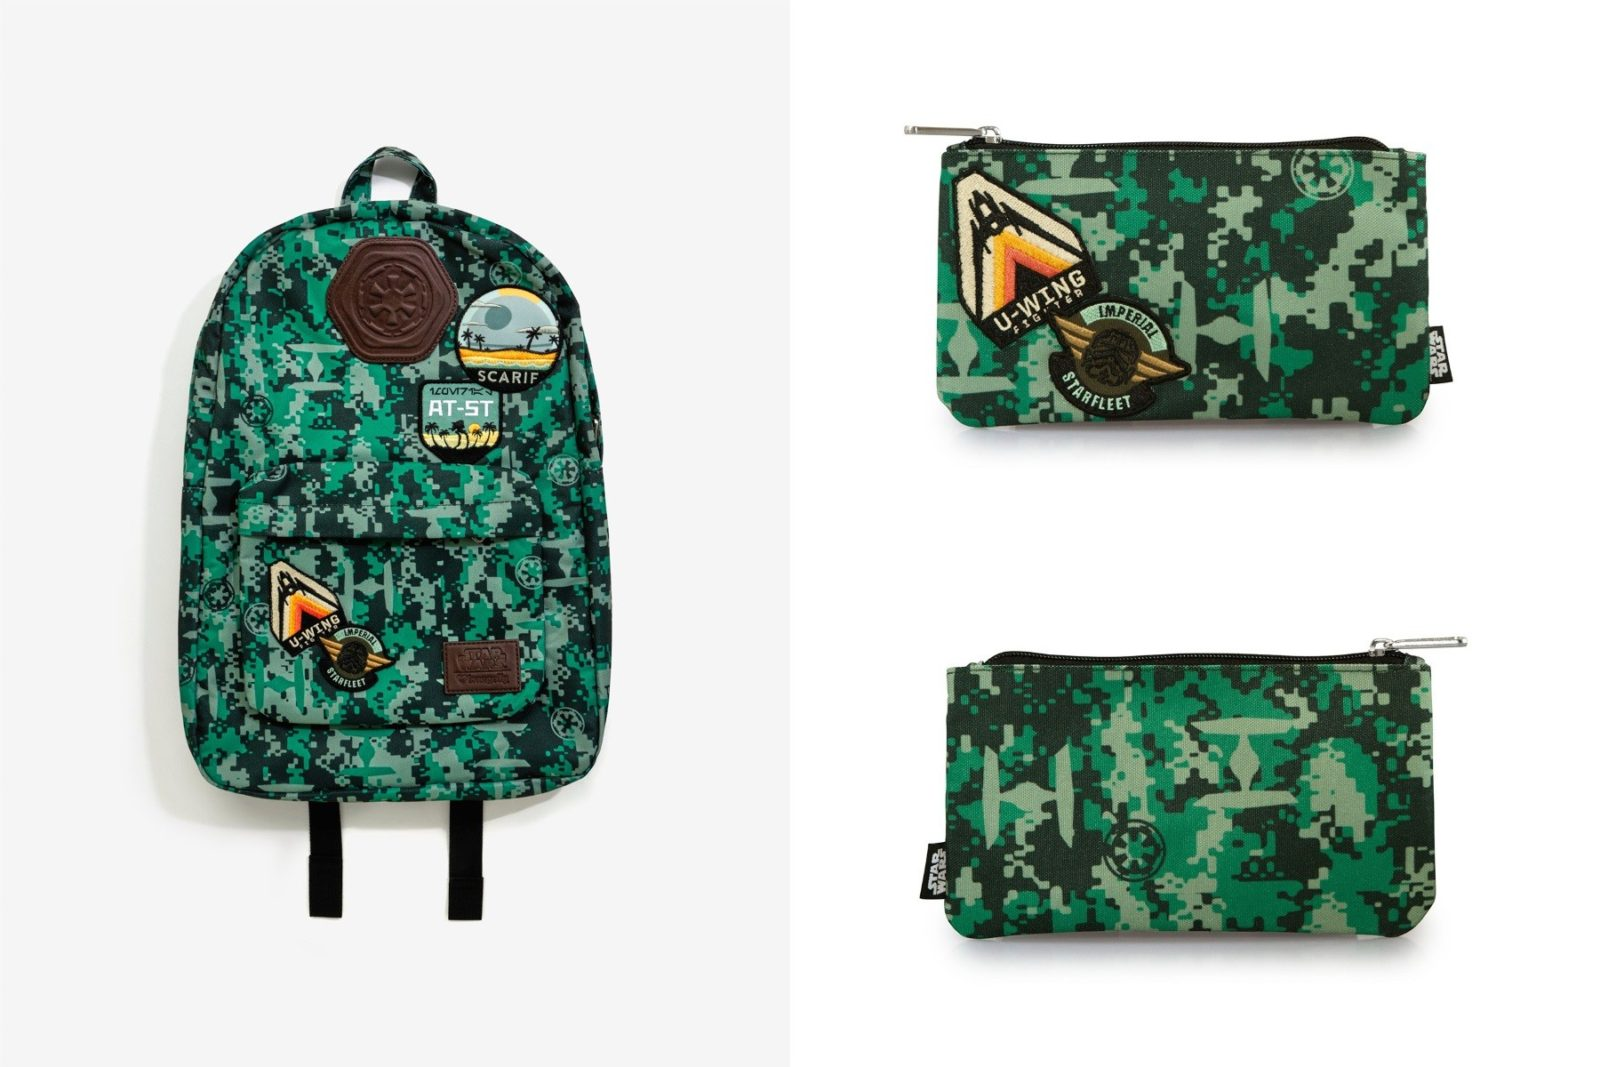 New Loungefly x Rogue One camo bags